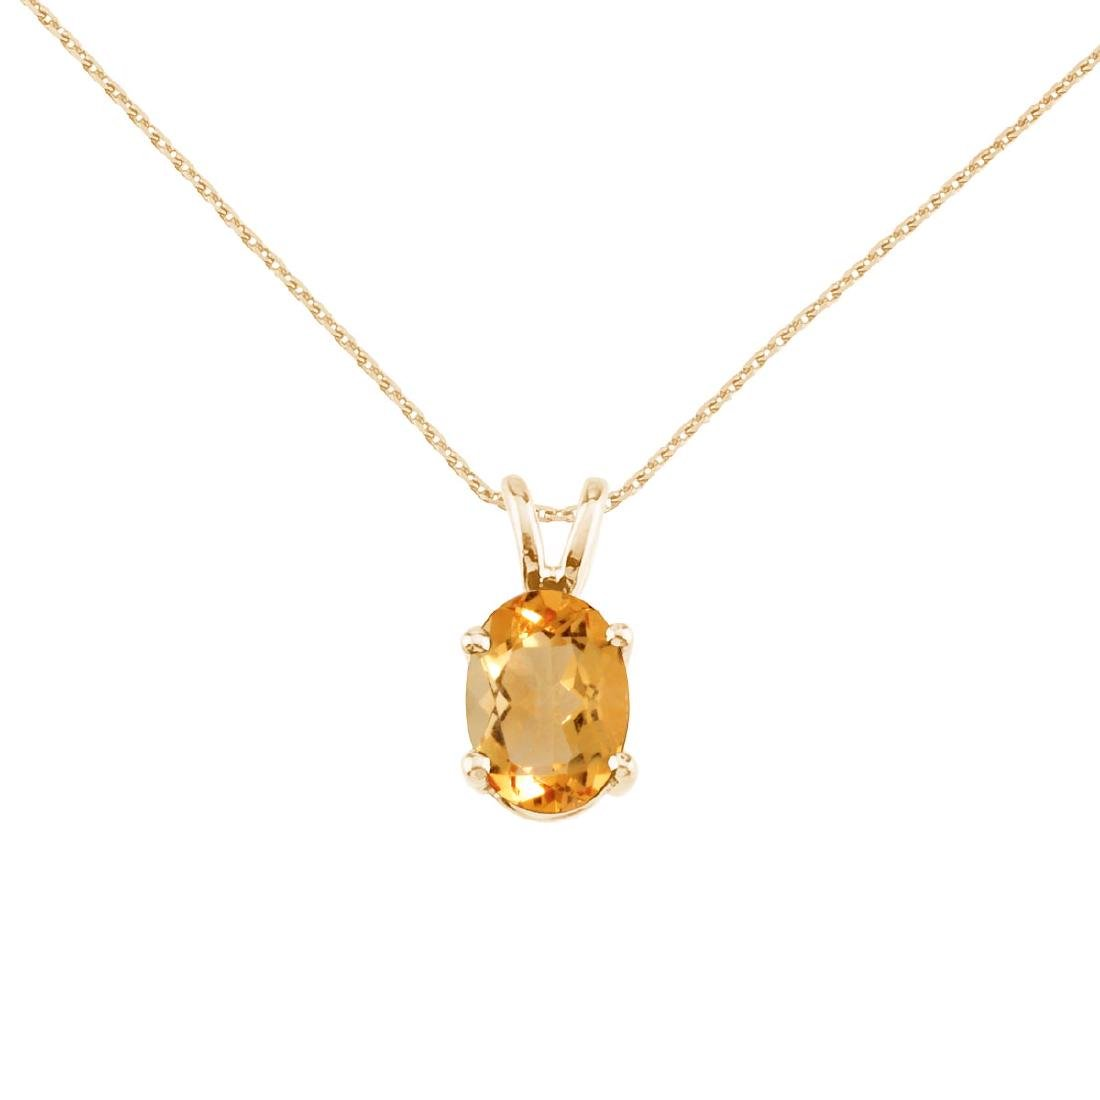 Certified 14k Yellow Gold Oval Citrine Pendant 0.8 CTW